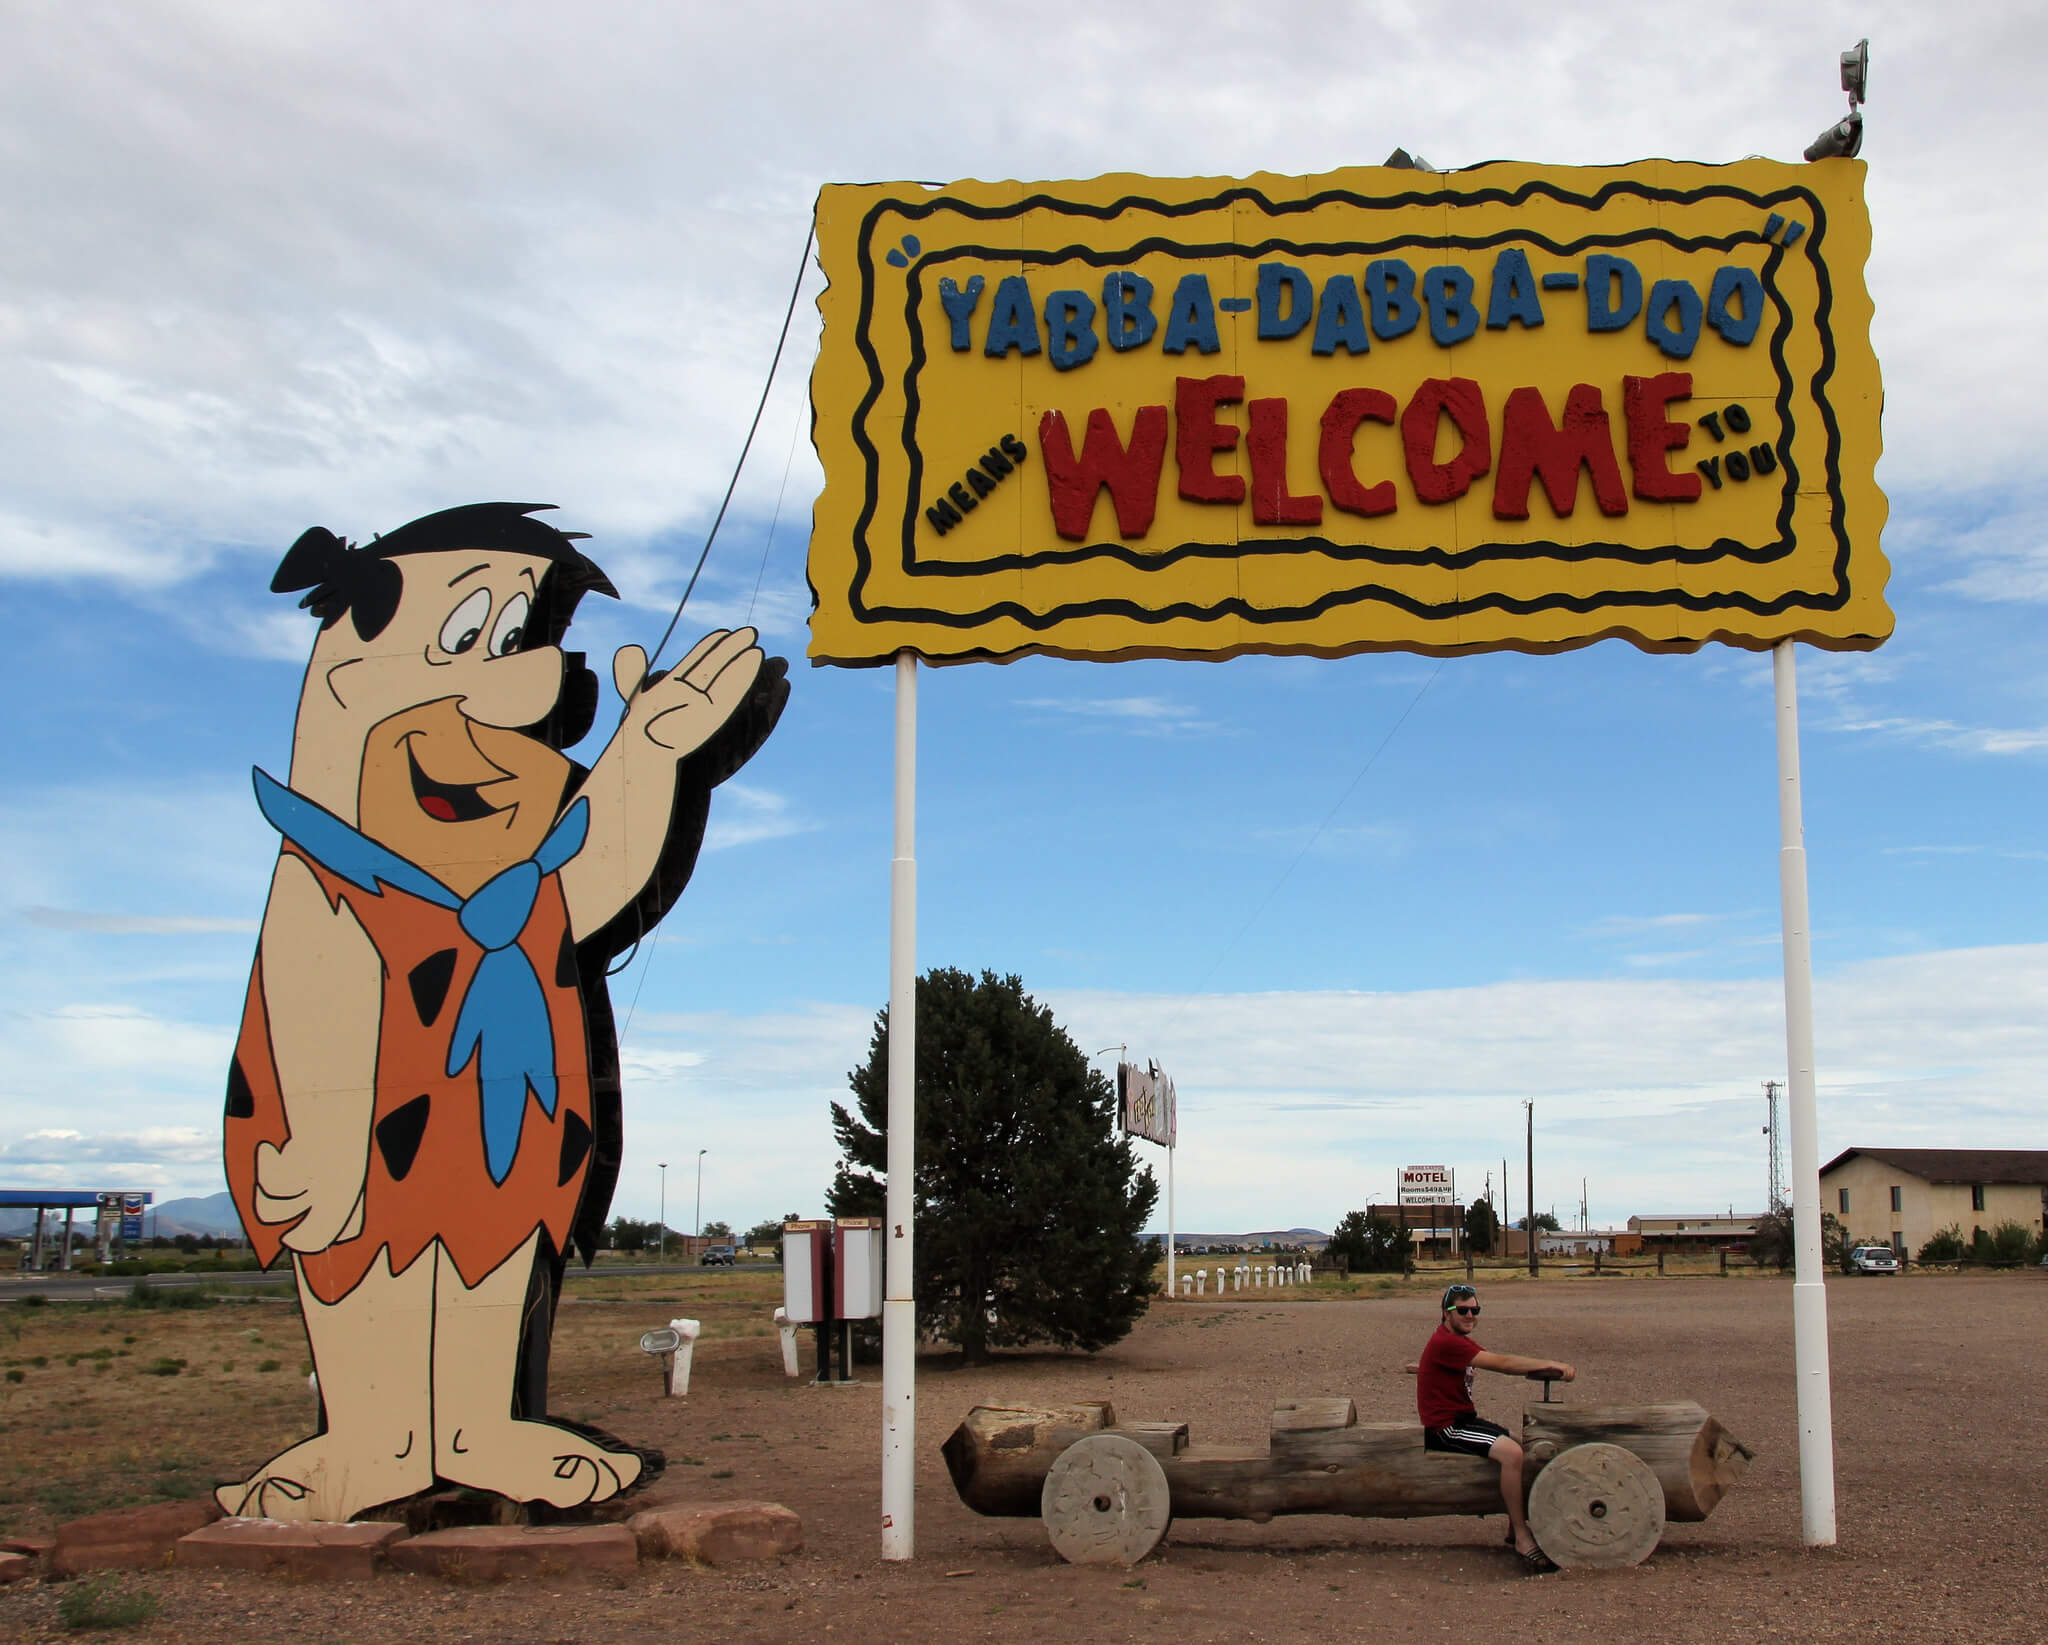 4 Reasons This Unique Theme Park In Arizona Will Have You Feeling Like A Kid Again